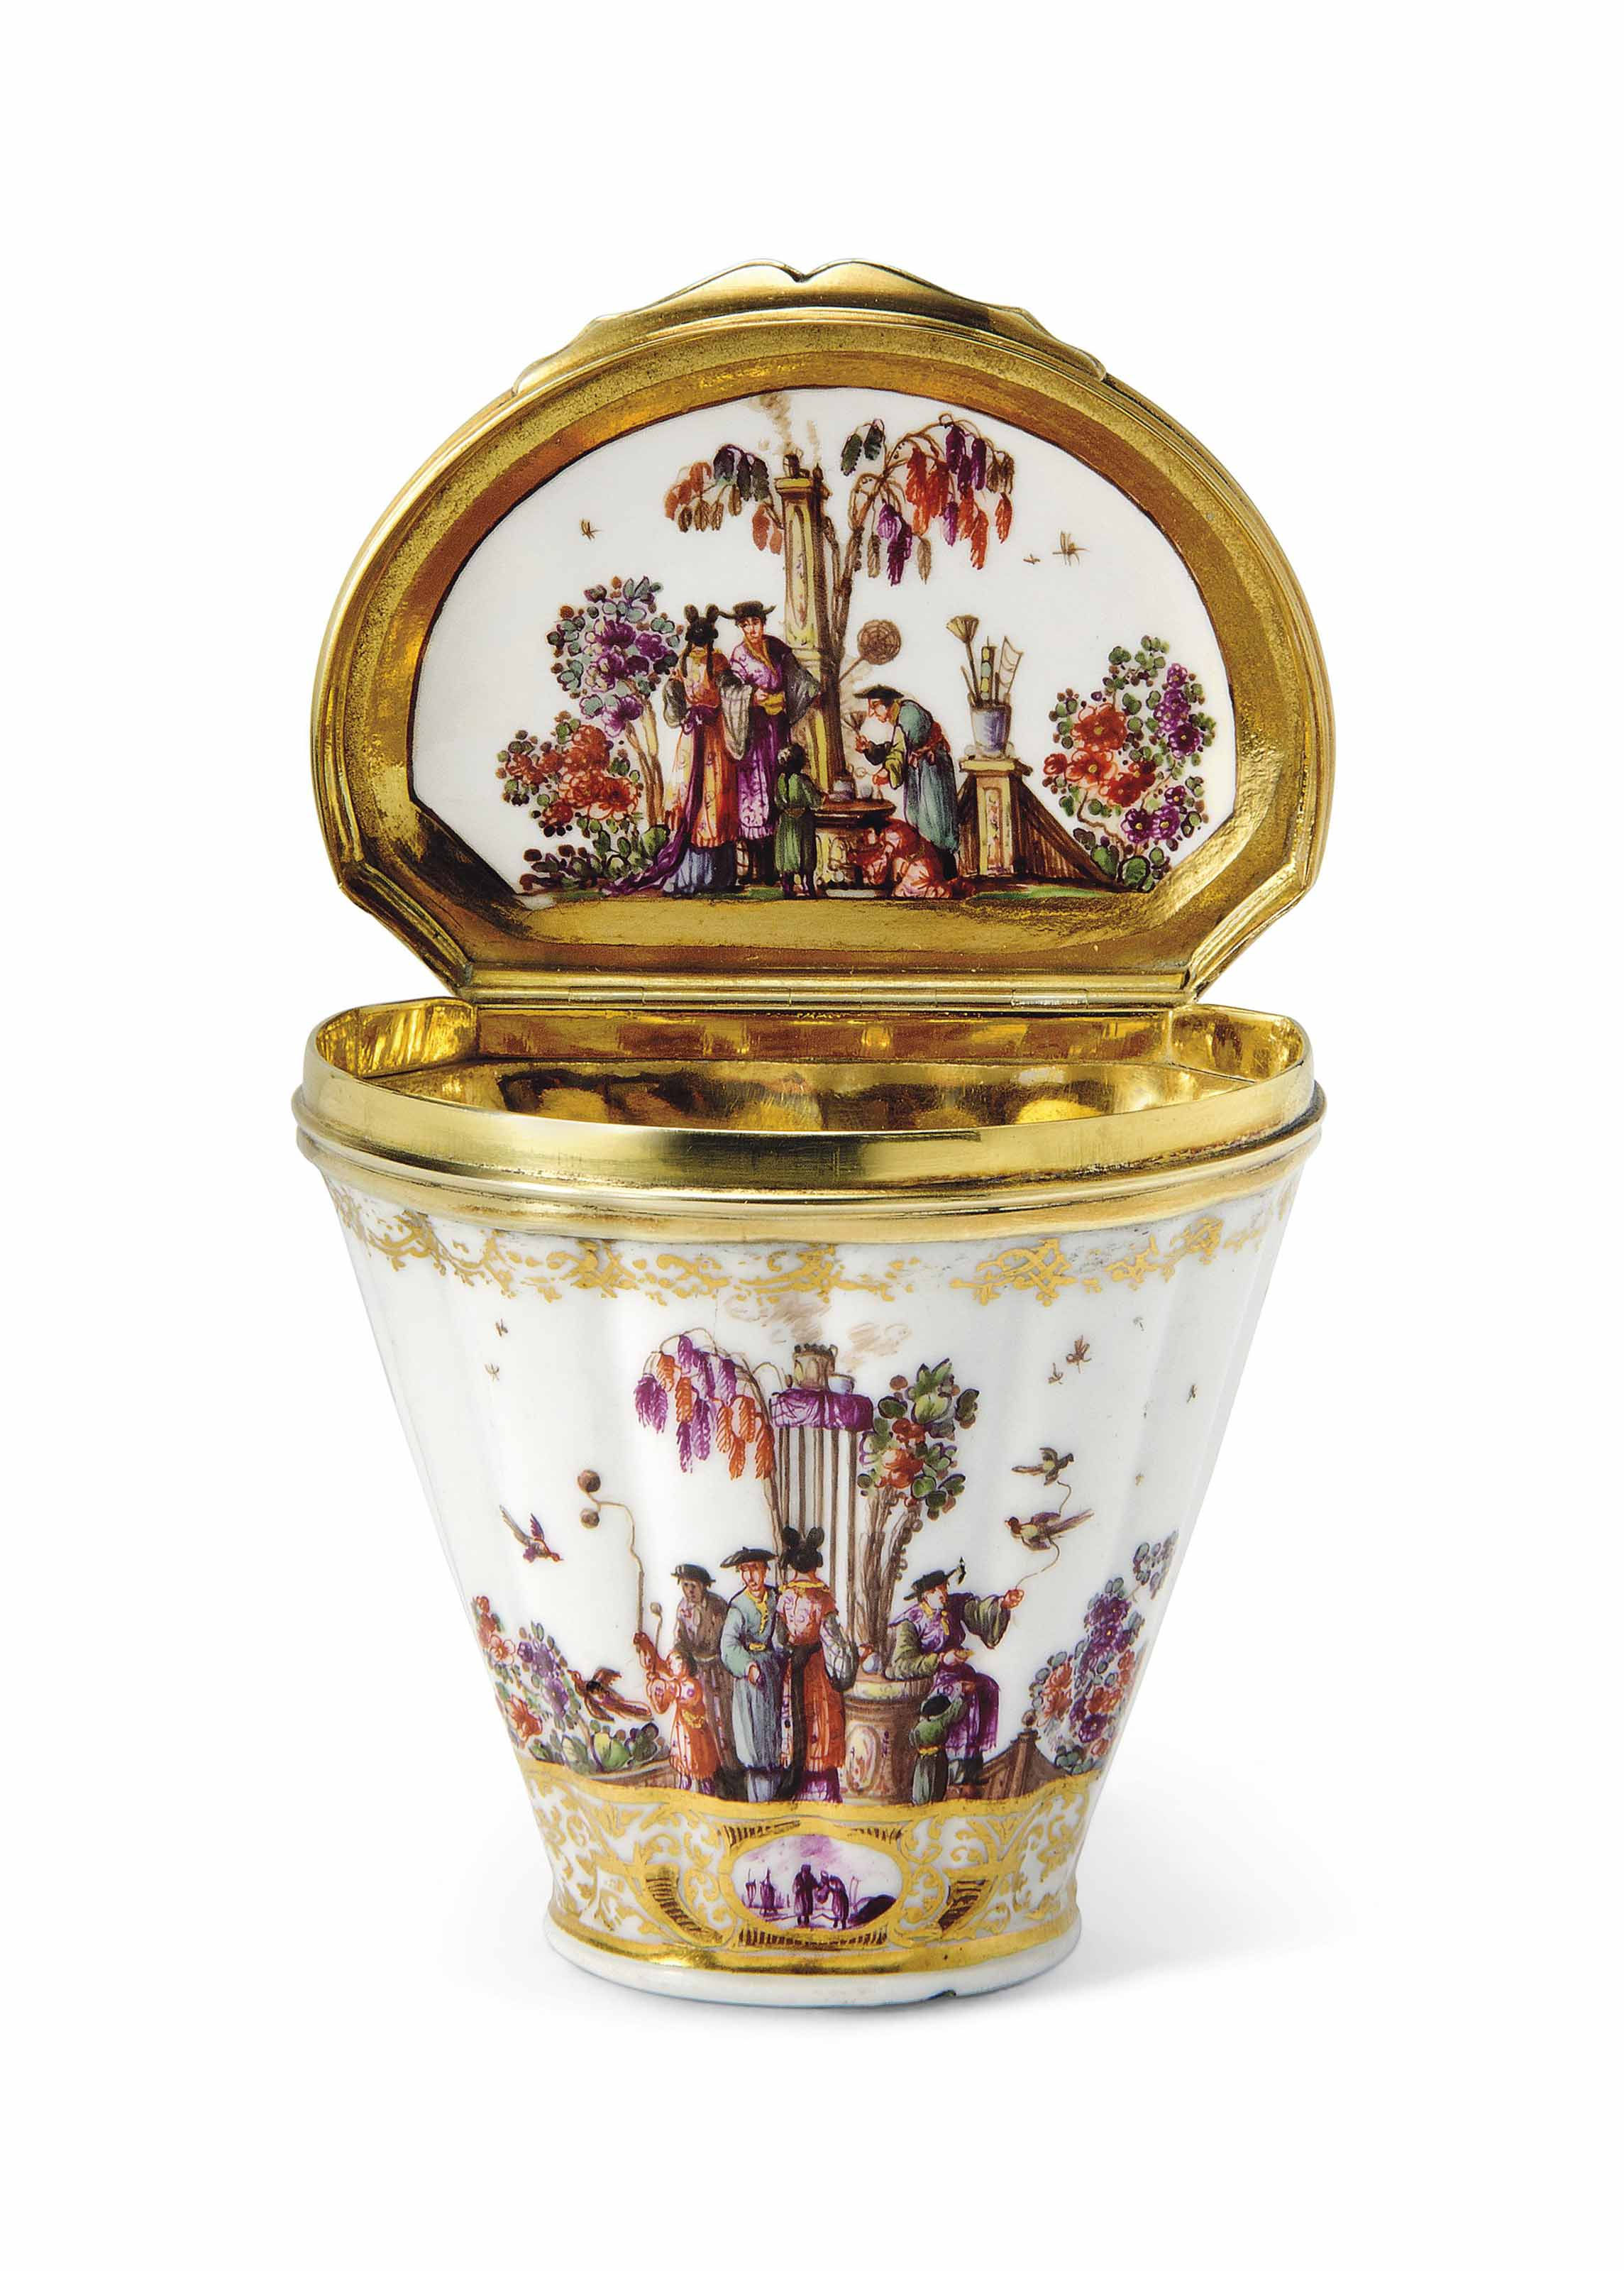 A MEISSEN SILVER-GILT-MOUNTED SNUFF-BOX